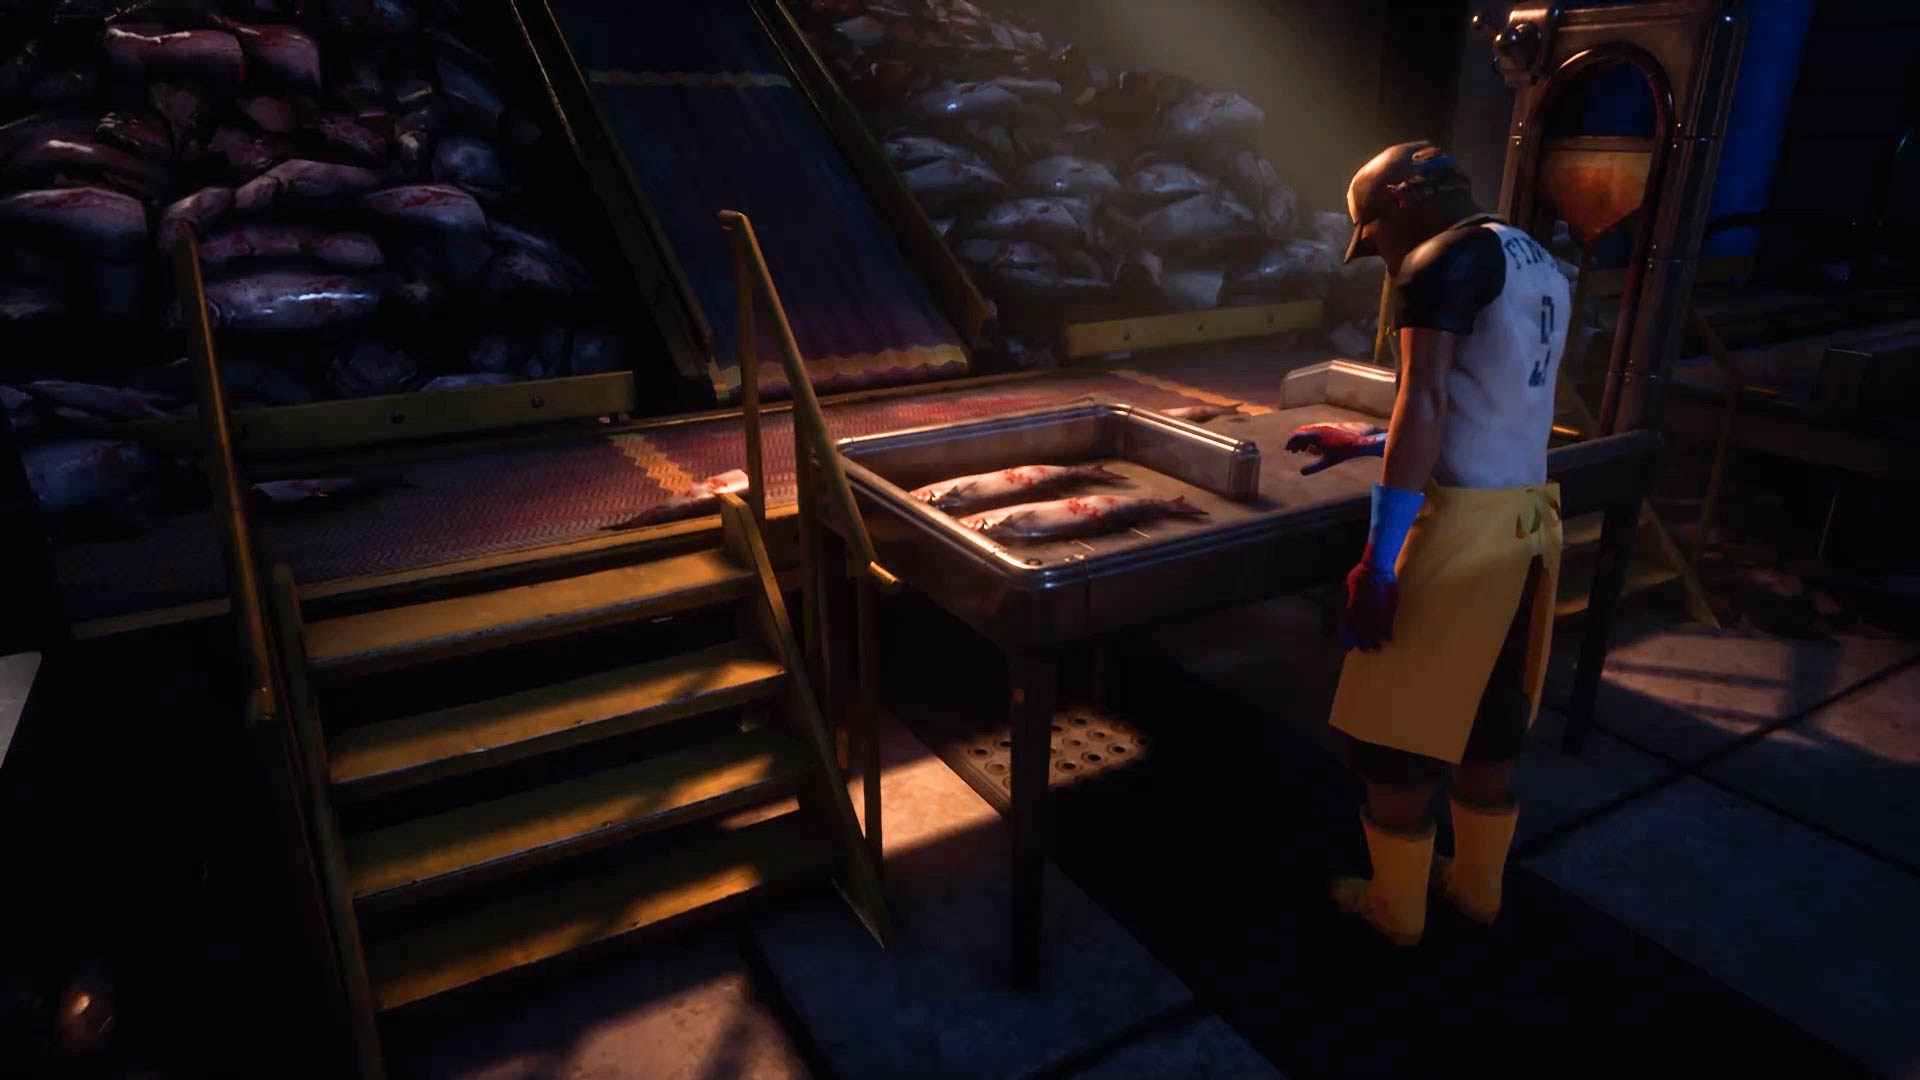 What Remains of Edith Finch factory worker